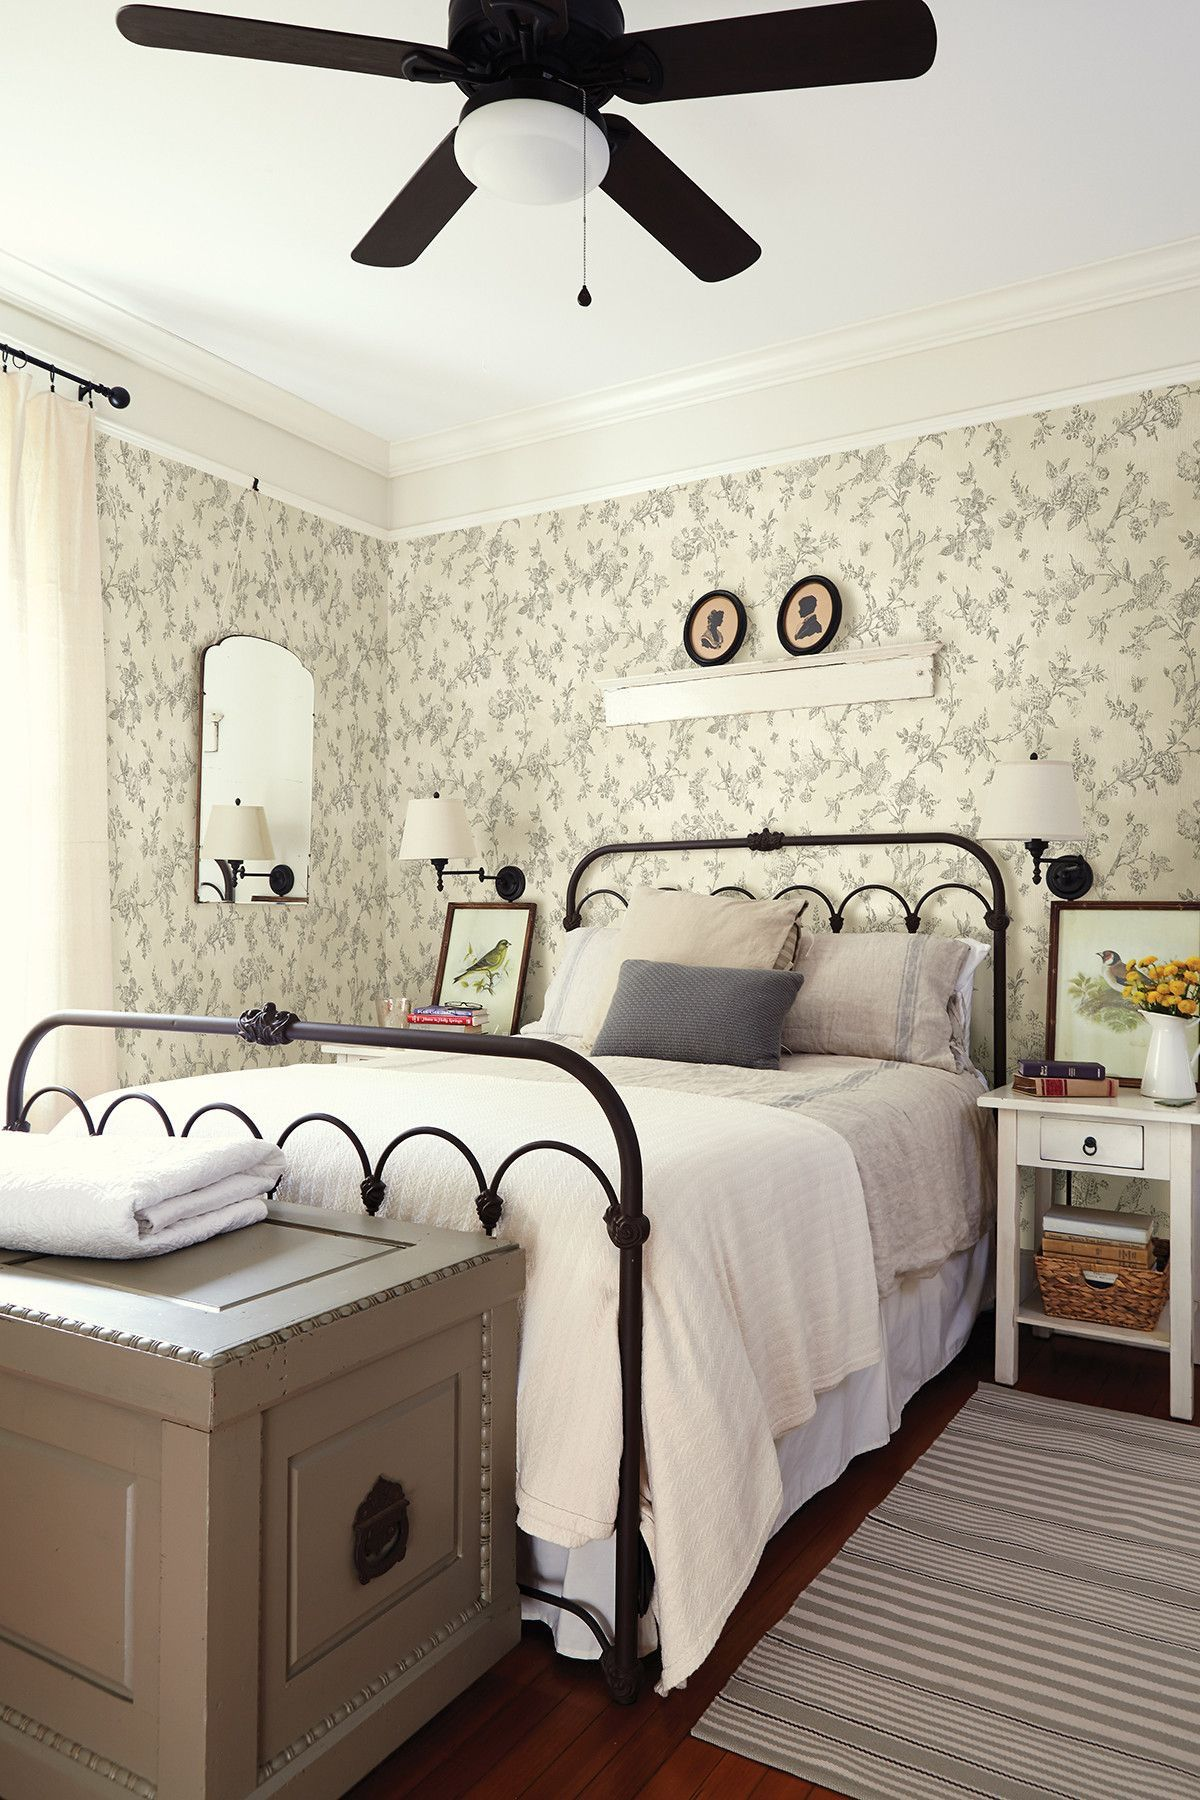 The Little Black And White Cottage Remodel Bedroom Ceiling Fan